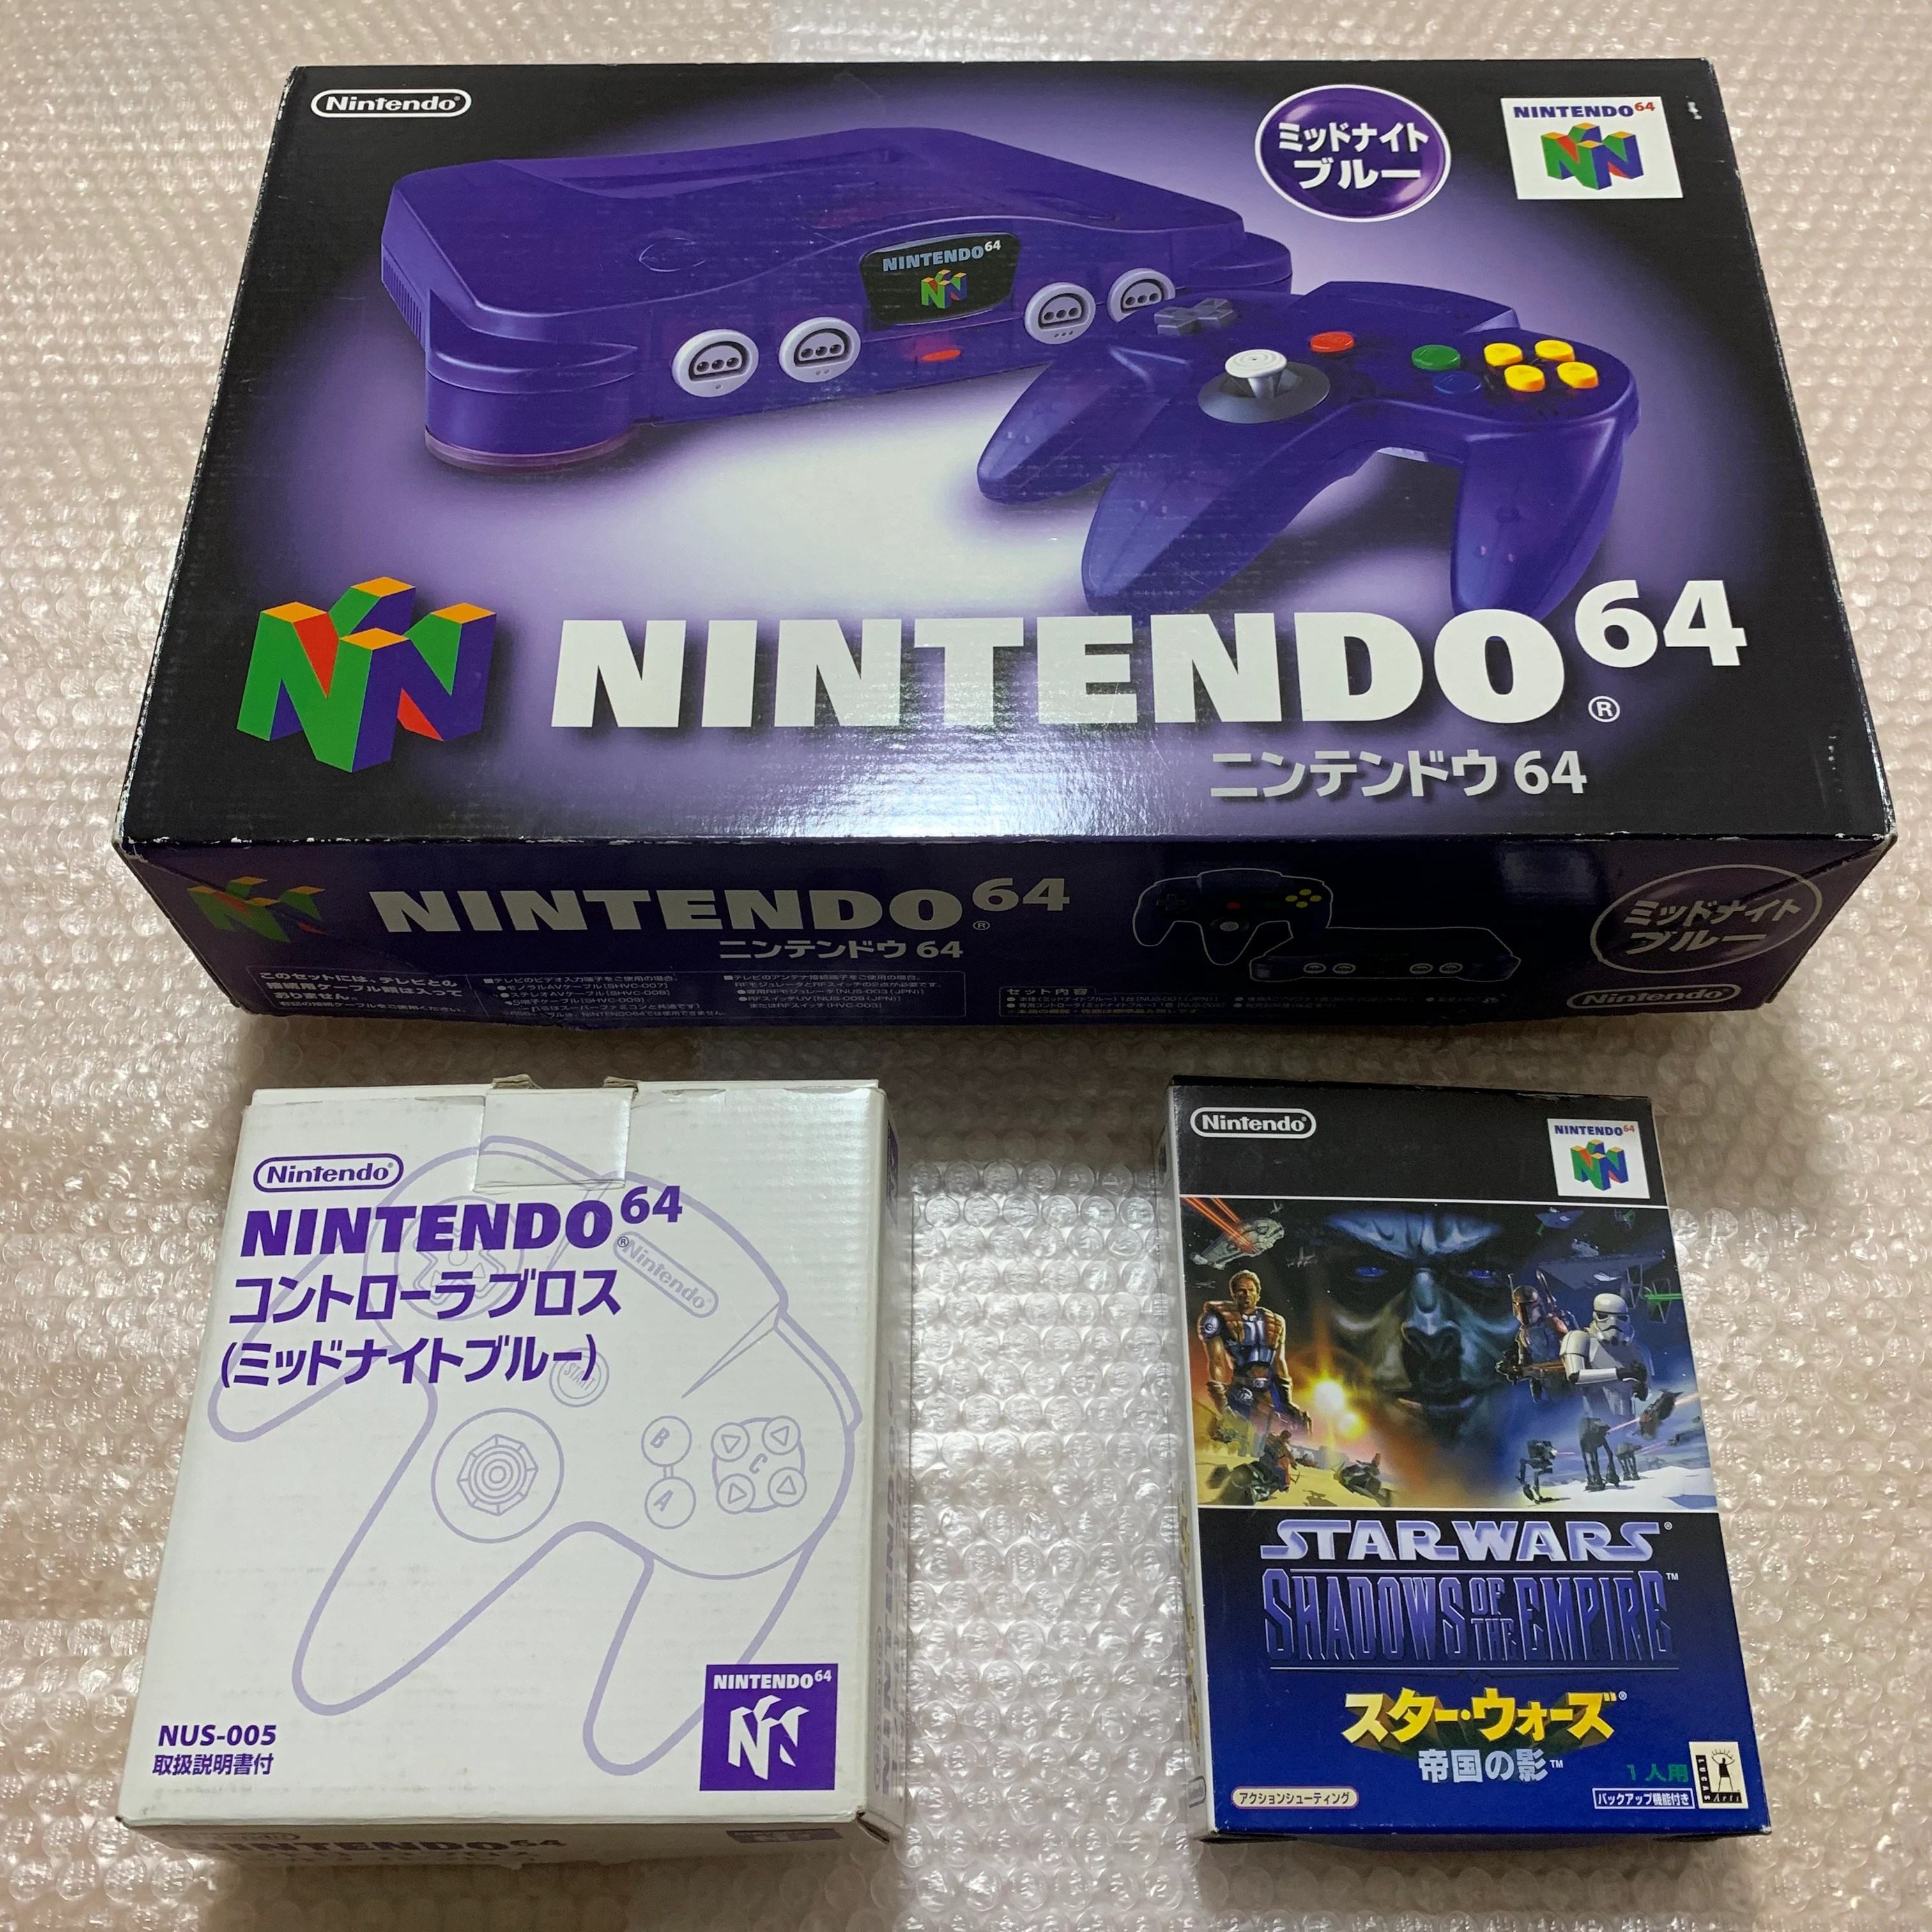 medium resolution of clear purple nintendo 64 in box set with ultra hdmi kit compatible with jp and us games